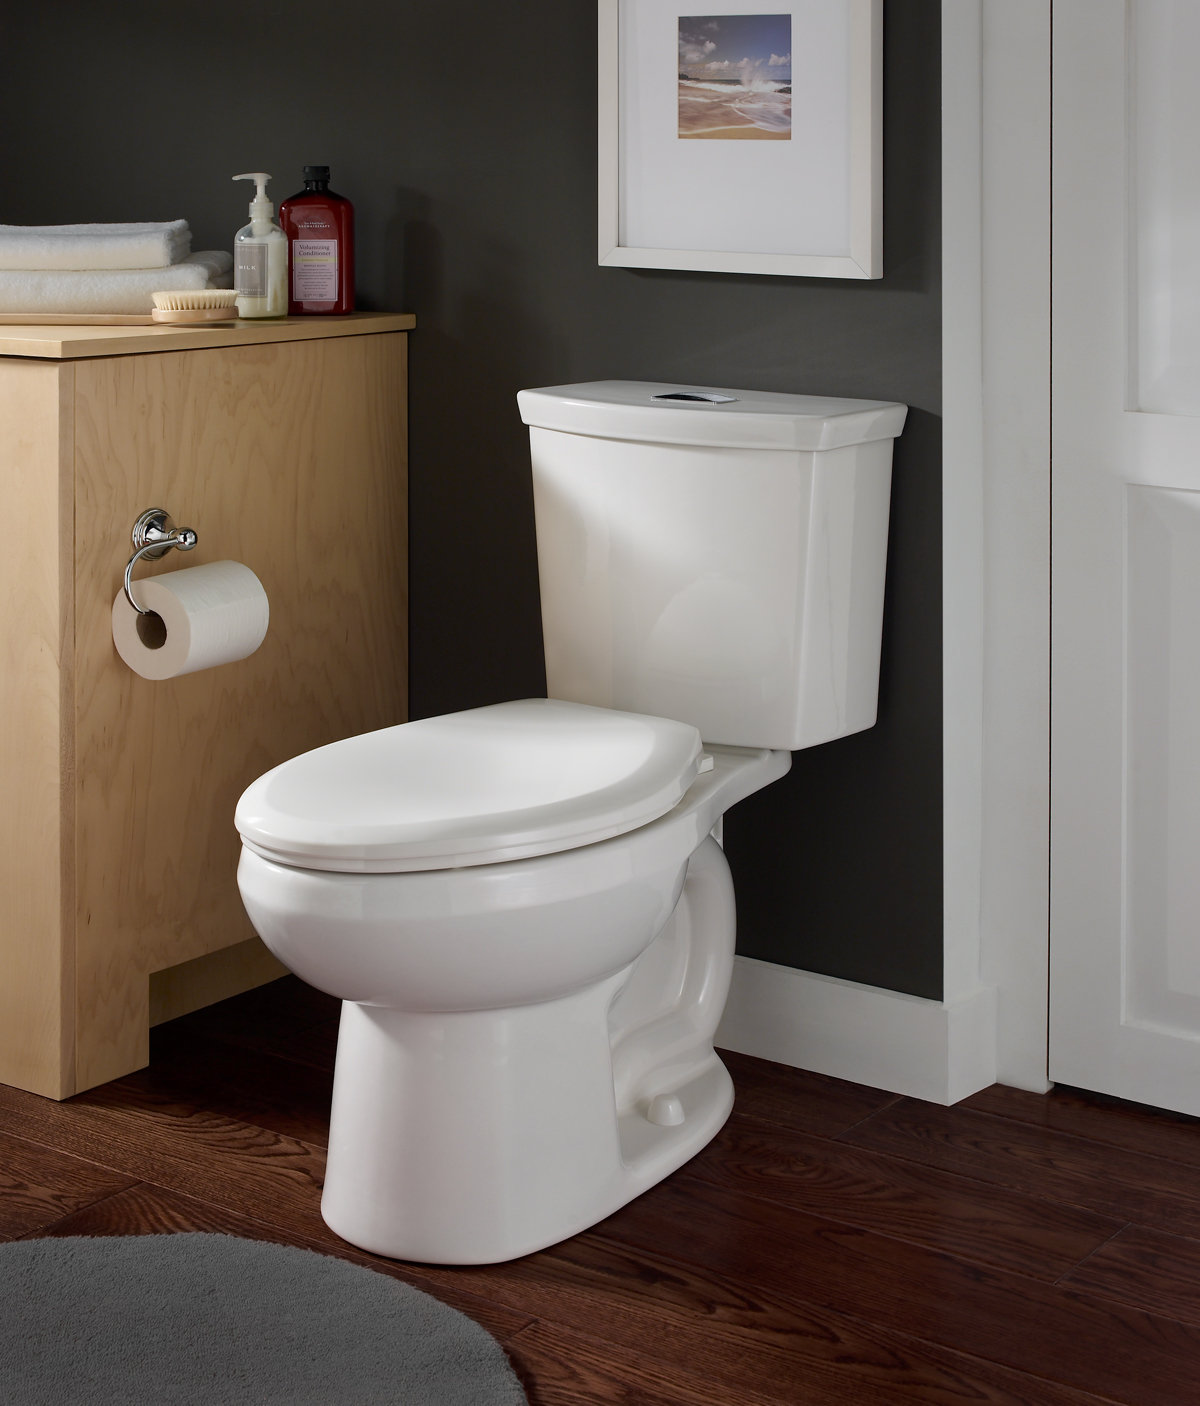 American Standard 2887216 020 H2option Dual Flush Elongated 1 0 1 6 Gpf Toilet White Kohler Toilet Amazon Com